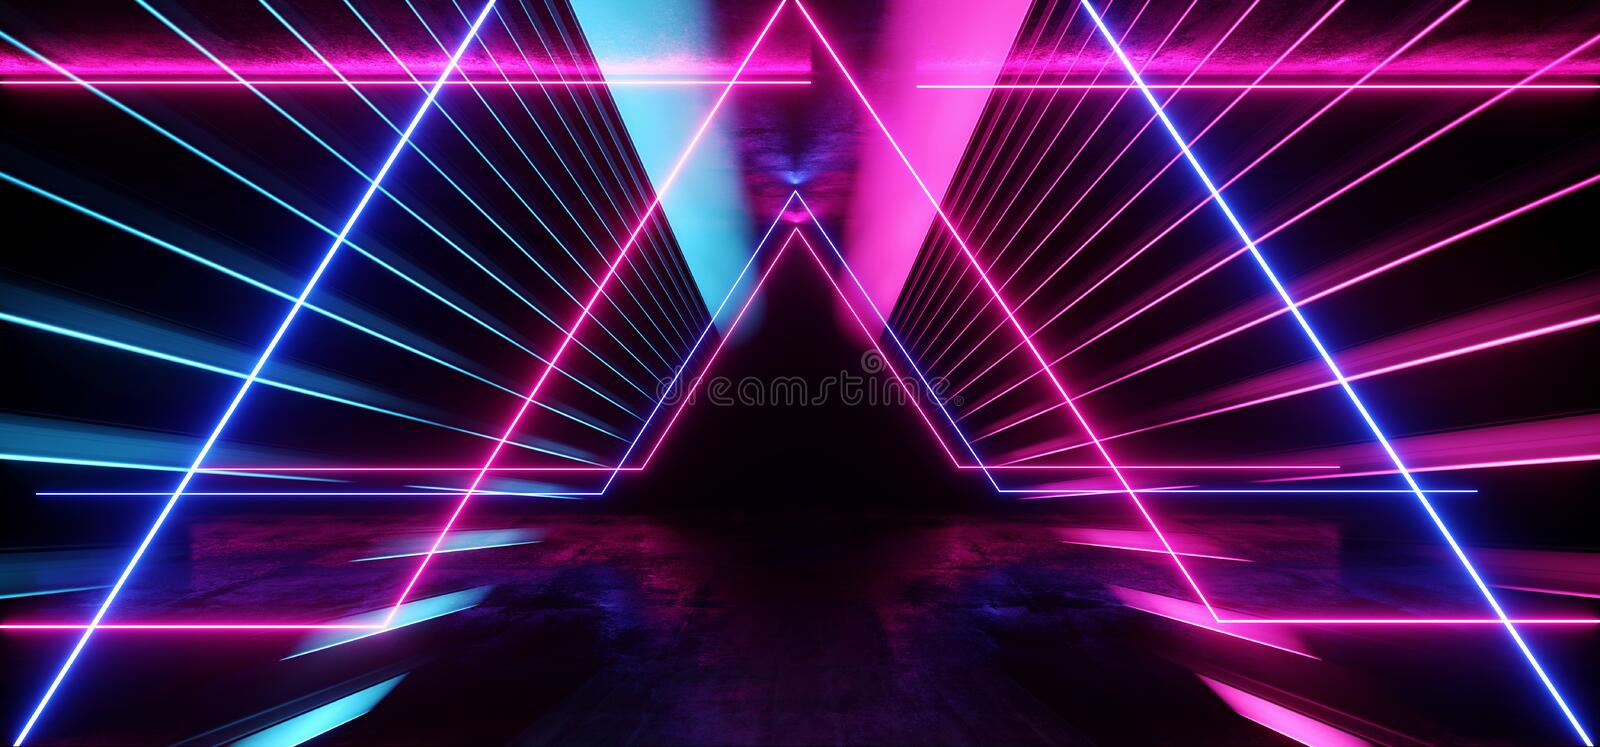 Psychedelic Abstract Futuristic Neon Fluorescent Sci Fi Vibrant Purple Blue Glow Laser Showcase Stage Dark Room Retro Modern. Virtual Background Spaceship royalty free illustration